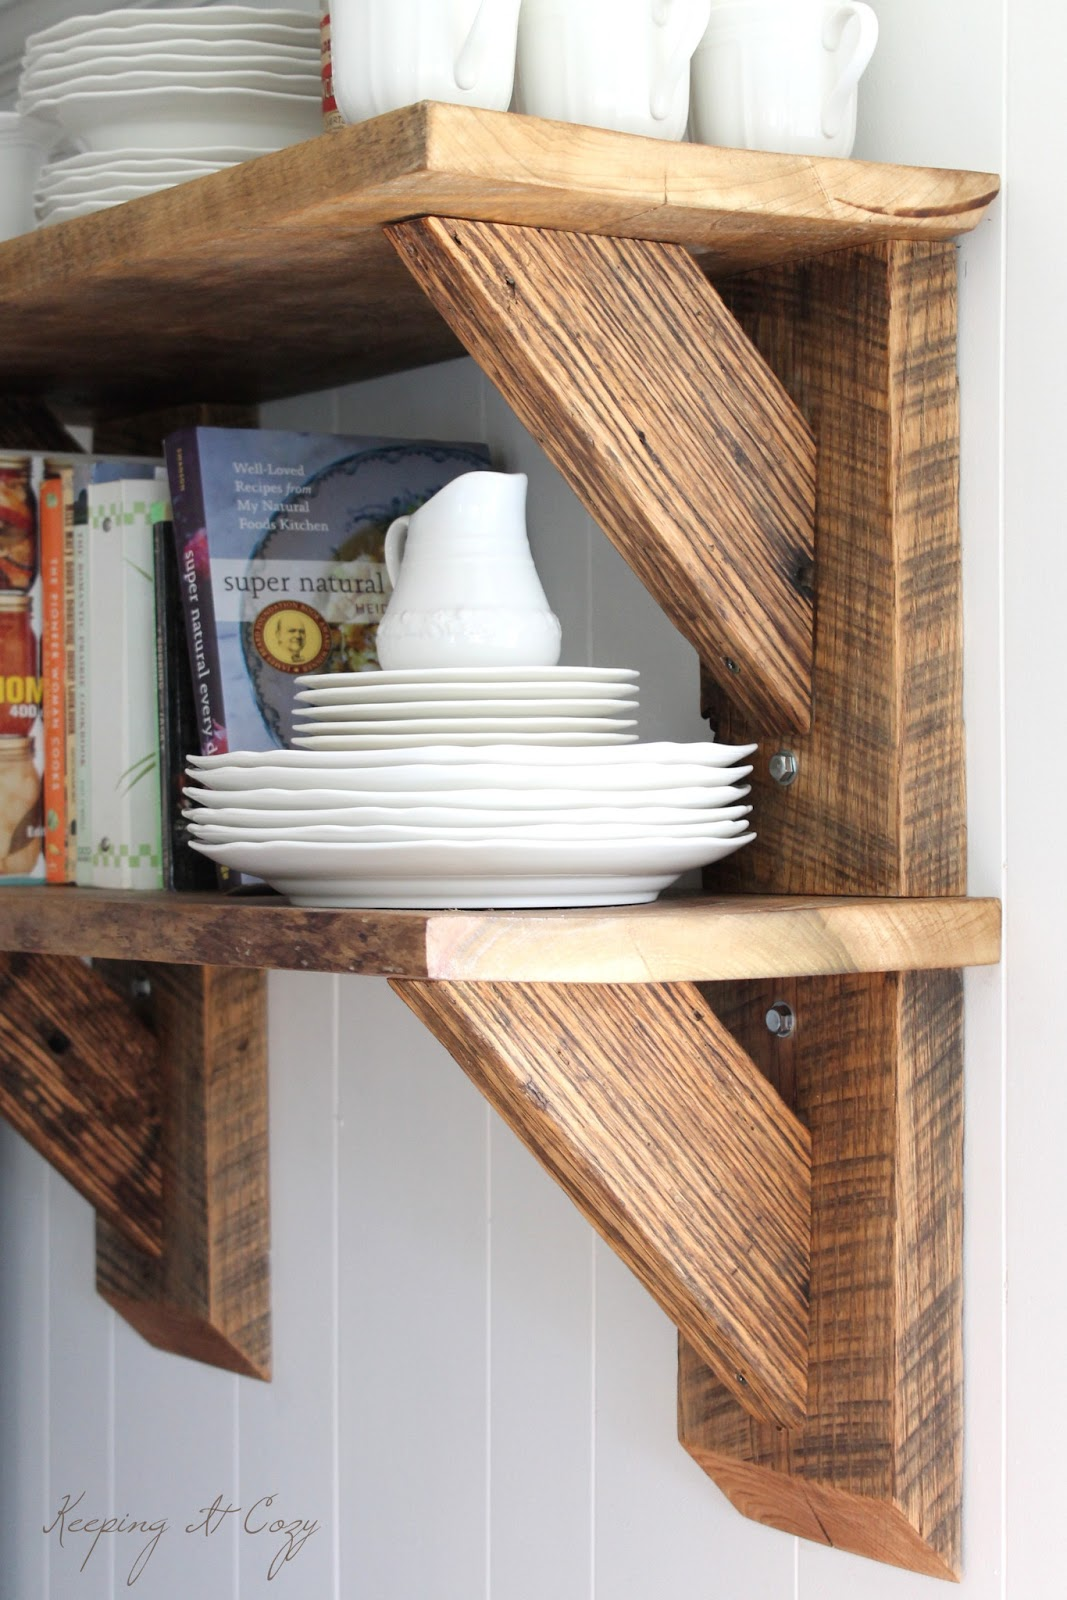 Reclaimed Wood Cabinets ~ Keeping it cozy reclaimed wood kitchen shelves